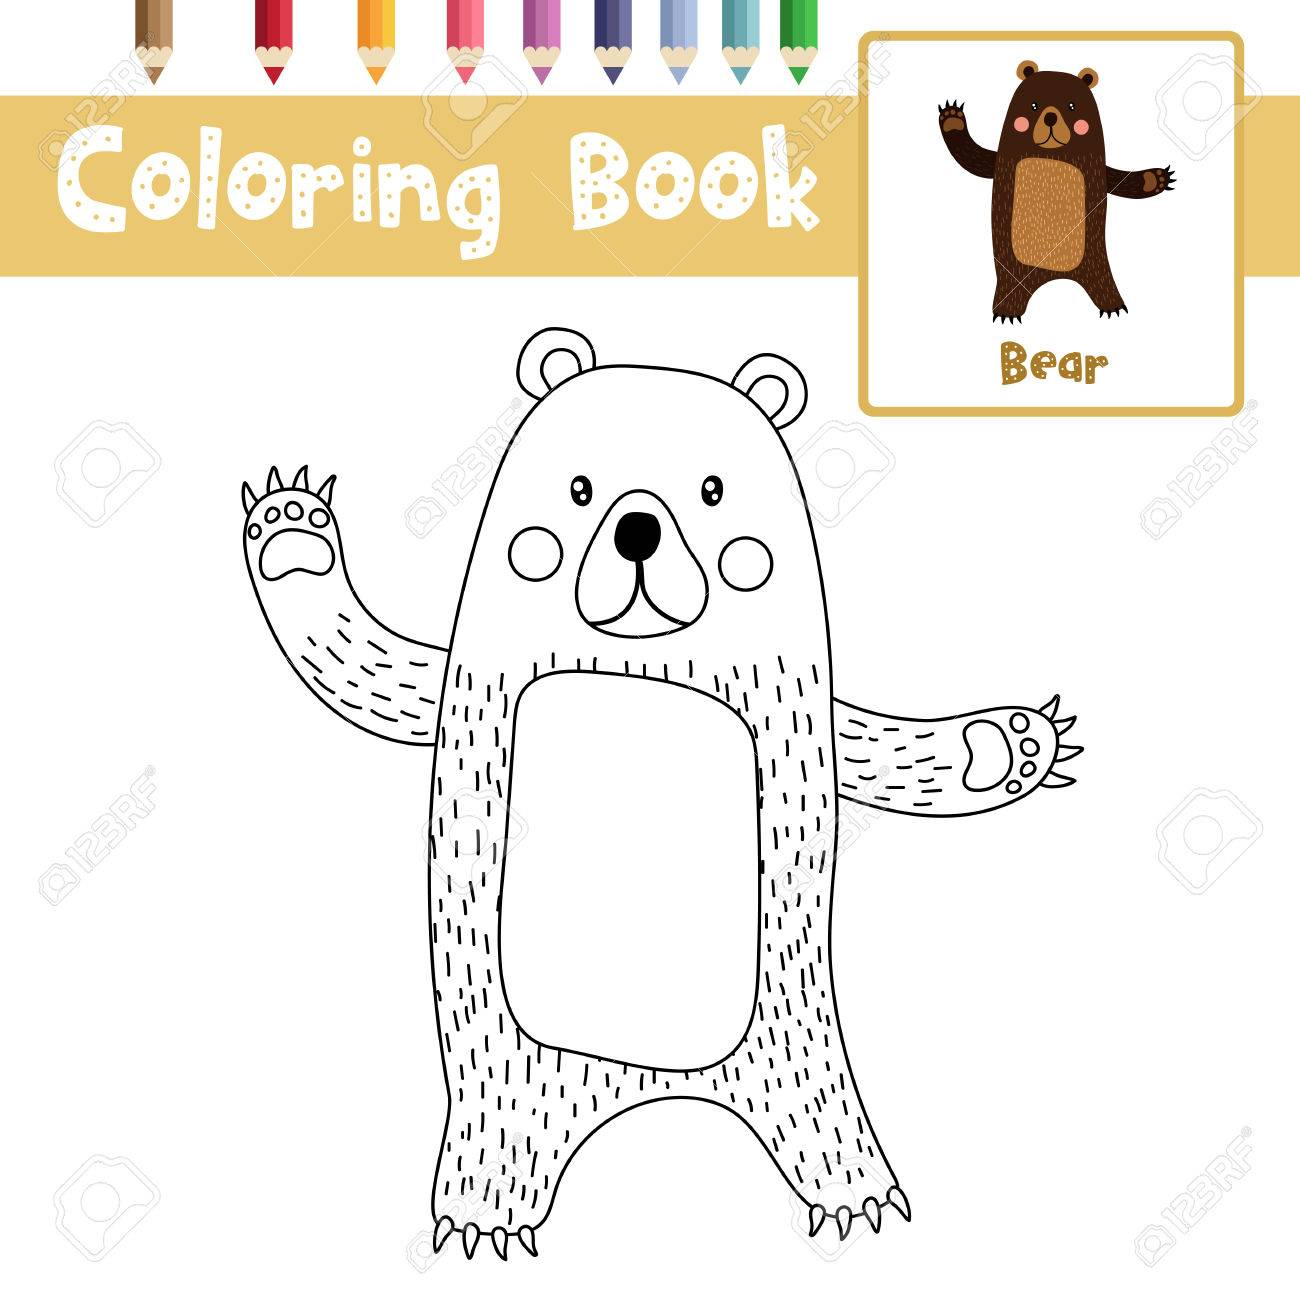 Coloring Page Of Standing Bear Raising Two Hands Animals For Preschool Kids Activity Educational Worksheet